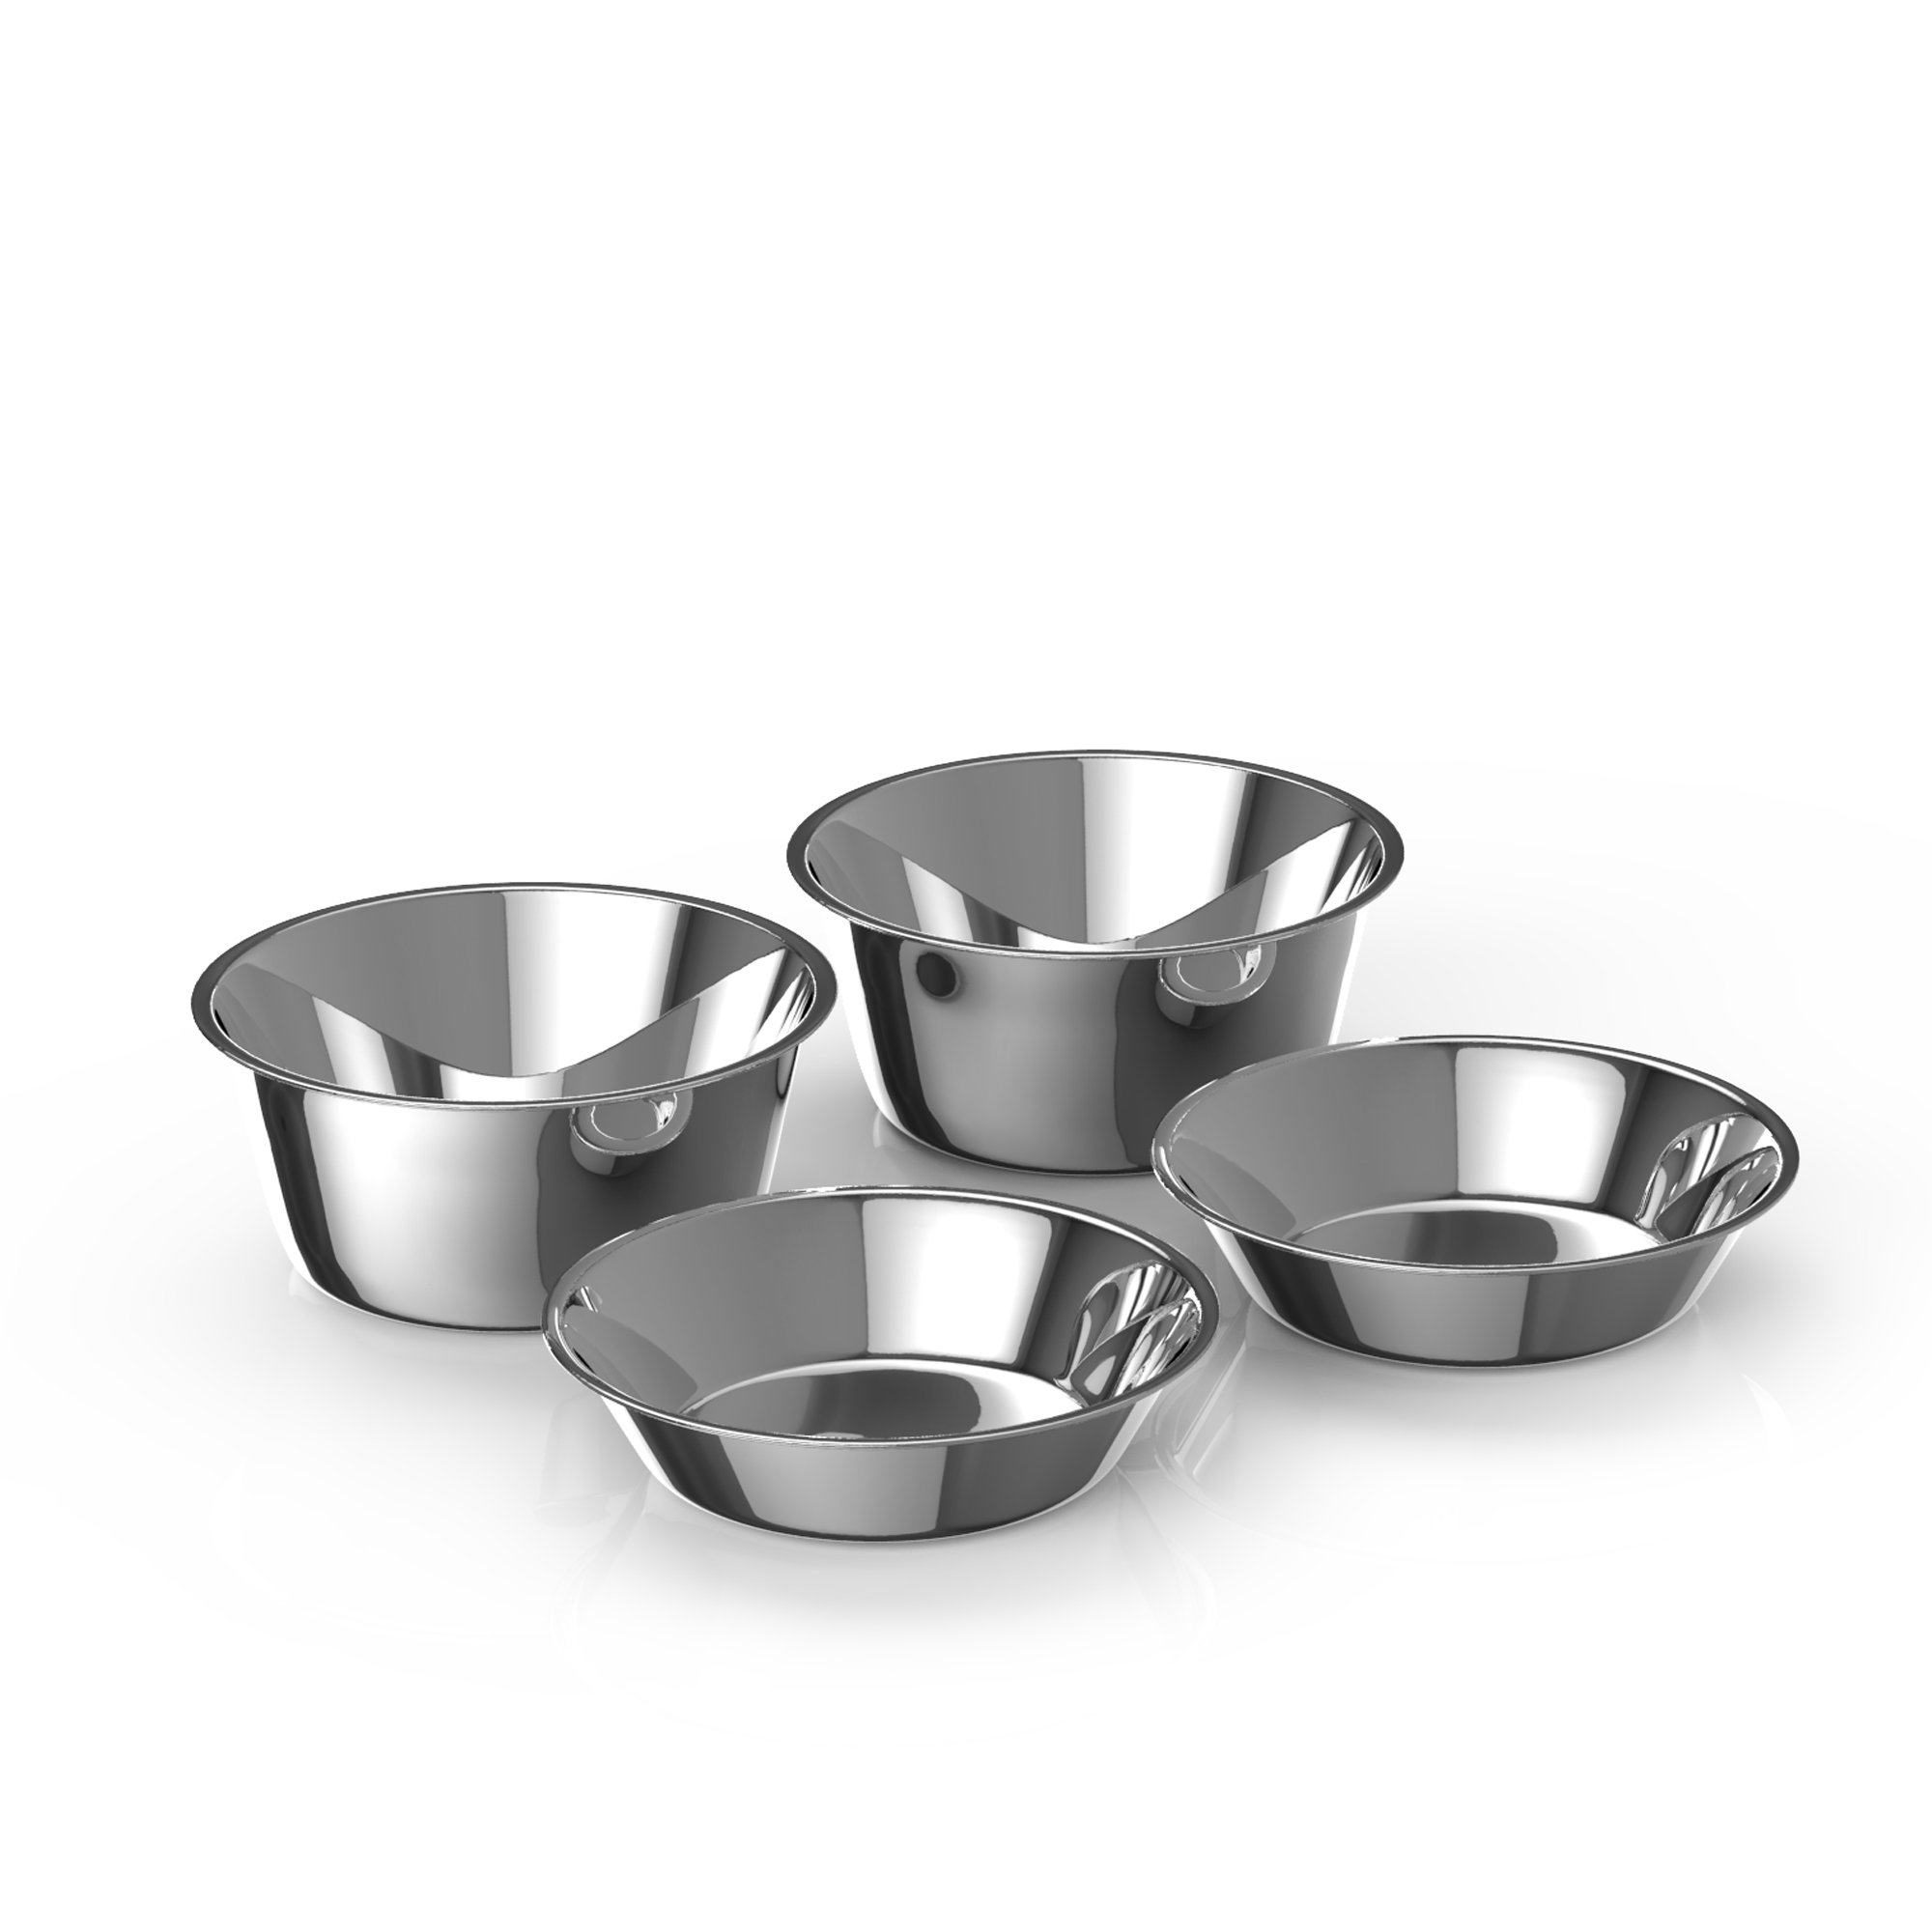 Premium Elevated Dog and Cat Pet Feeder, Double Bowl Raised Stand Comes with Extra Two Stainless Steel Bowls. Perfect for Dogs and Cats. (Replacement Bowls)